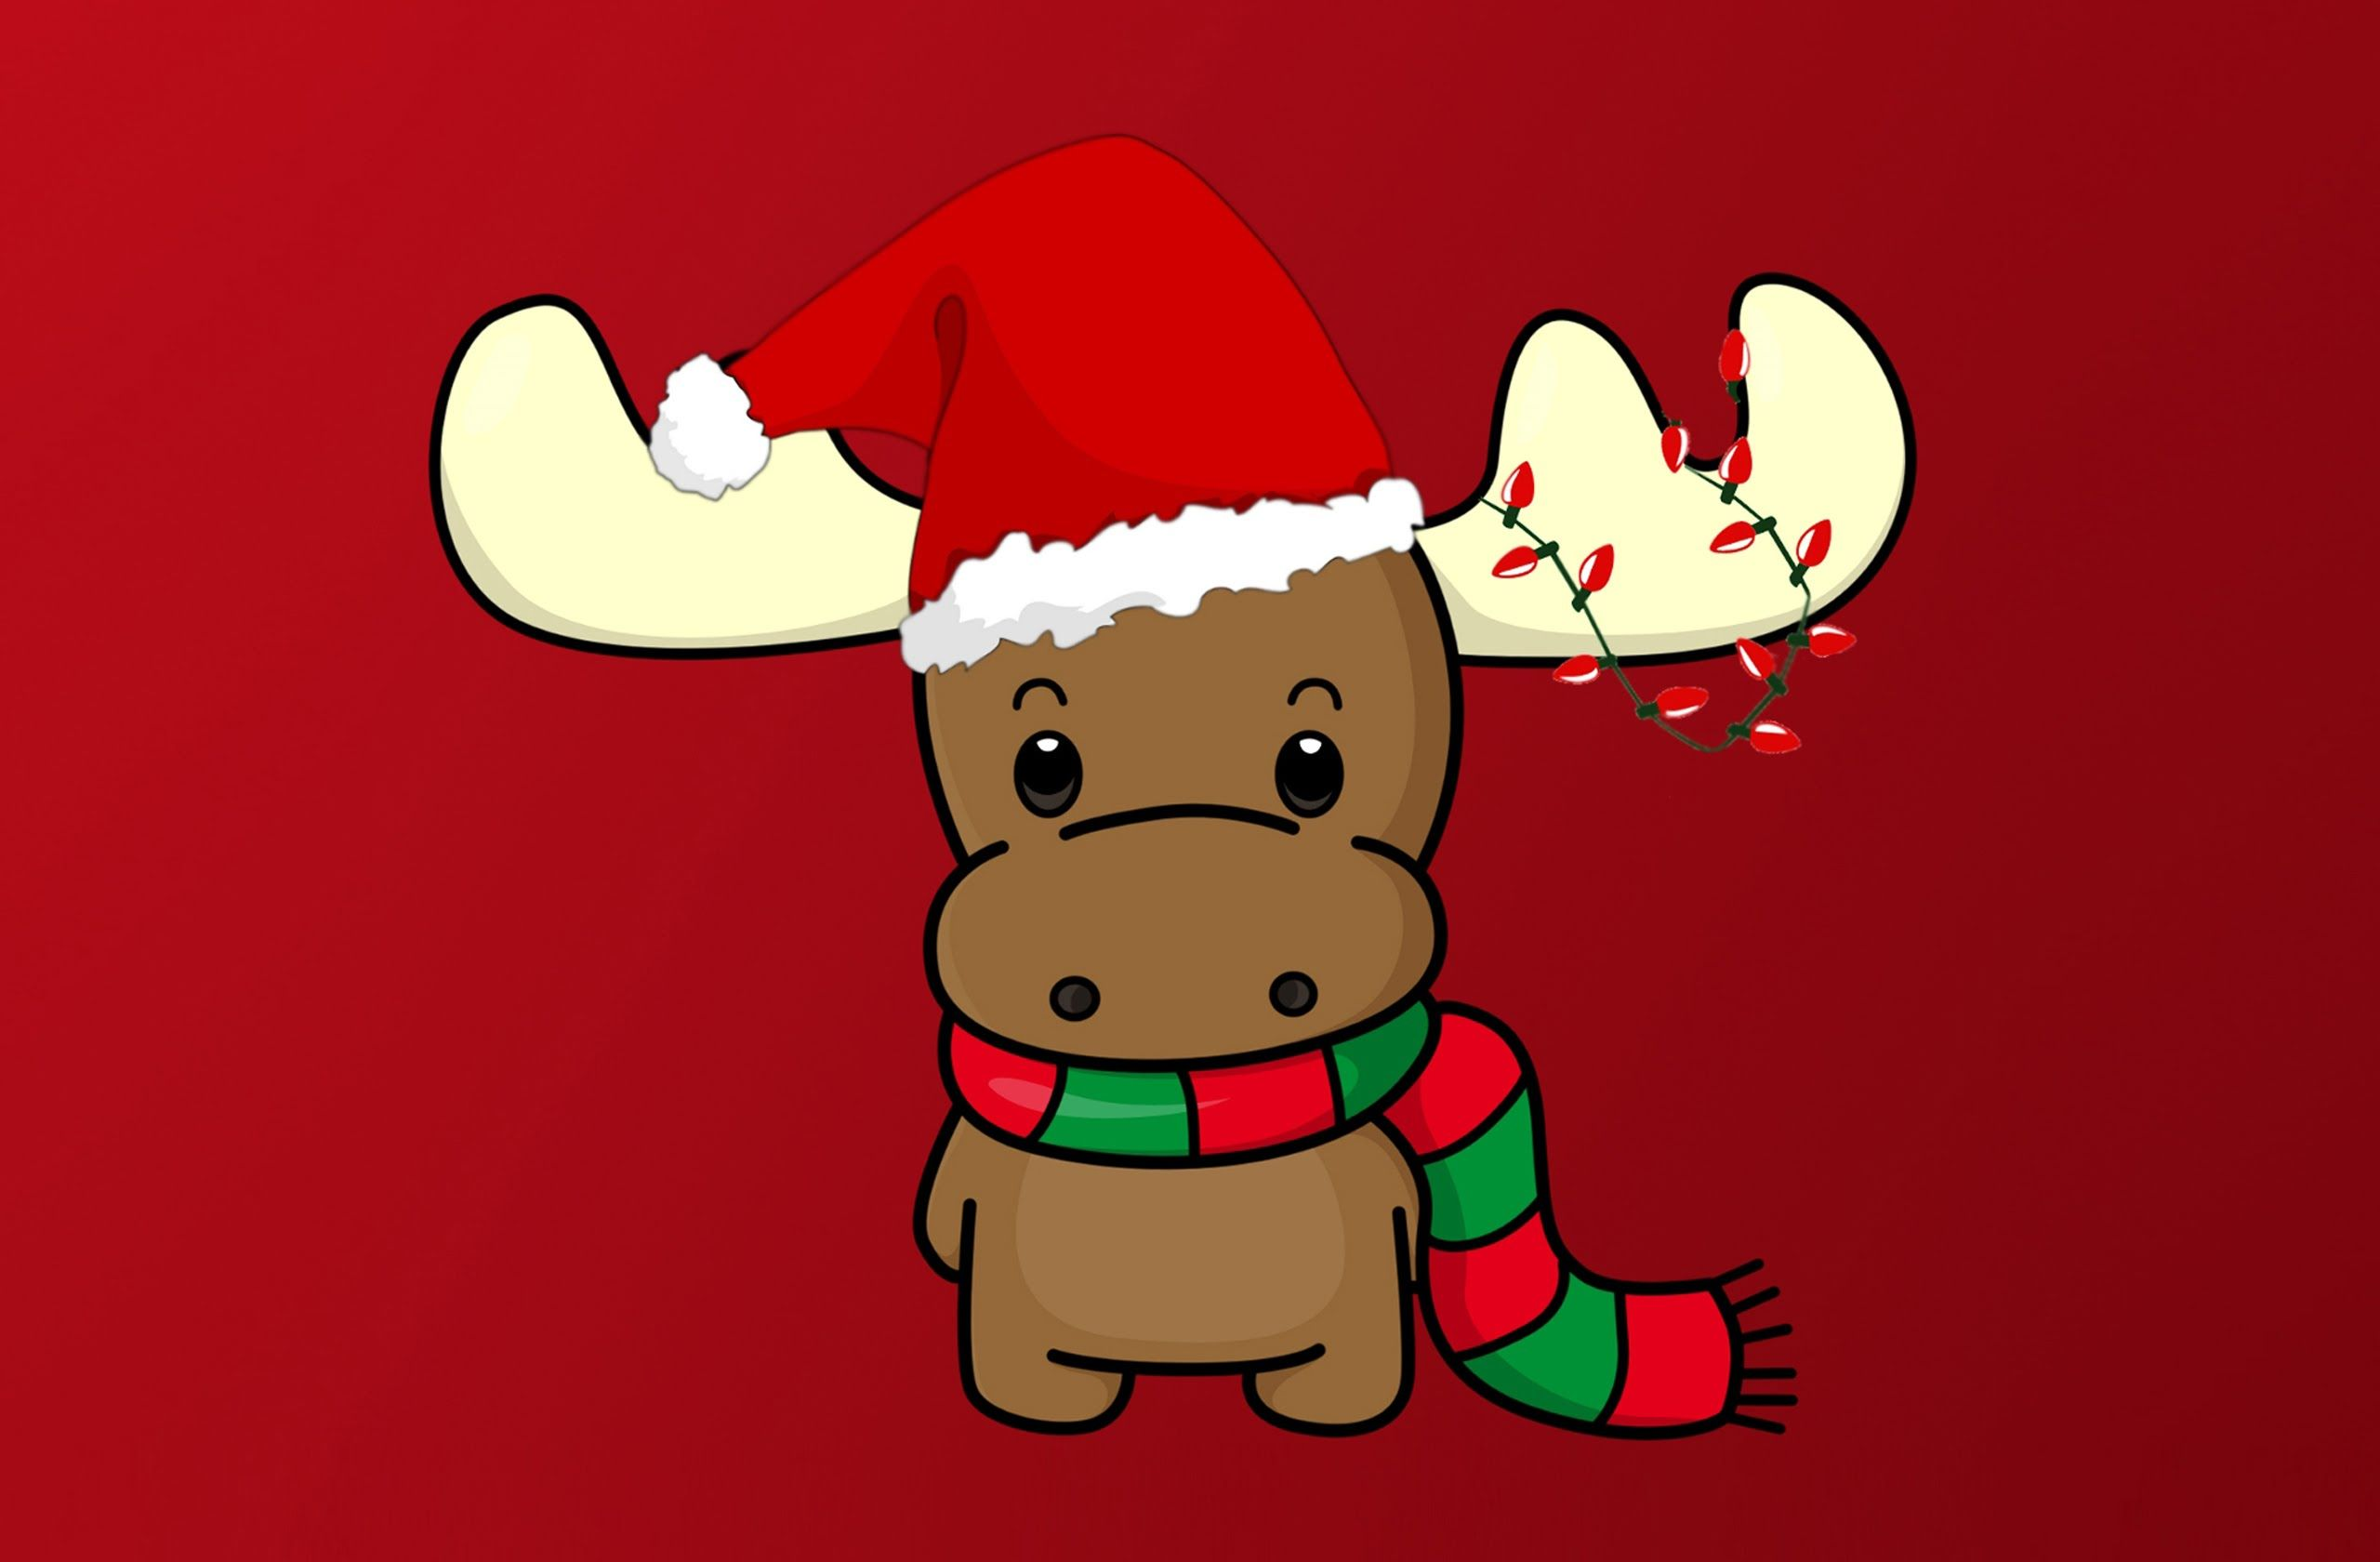 Cute Christmas Reindeer Wallpapers